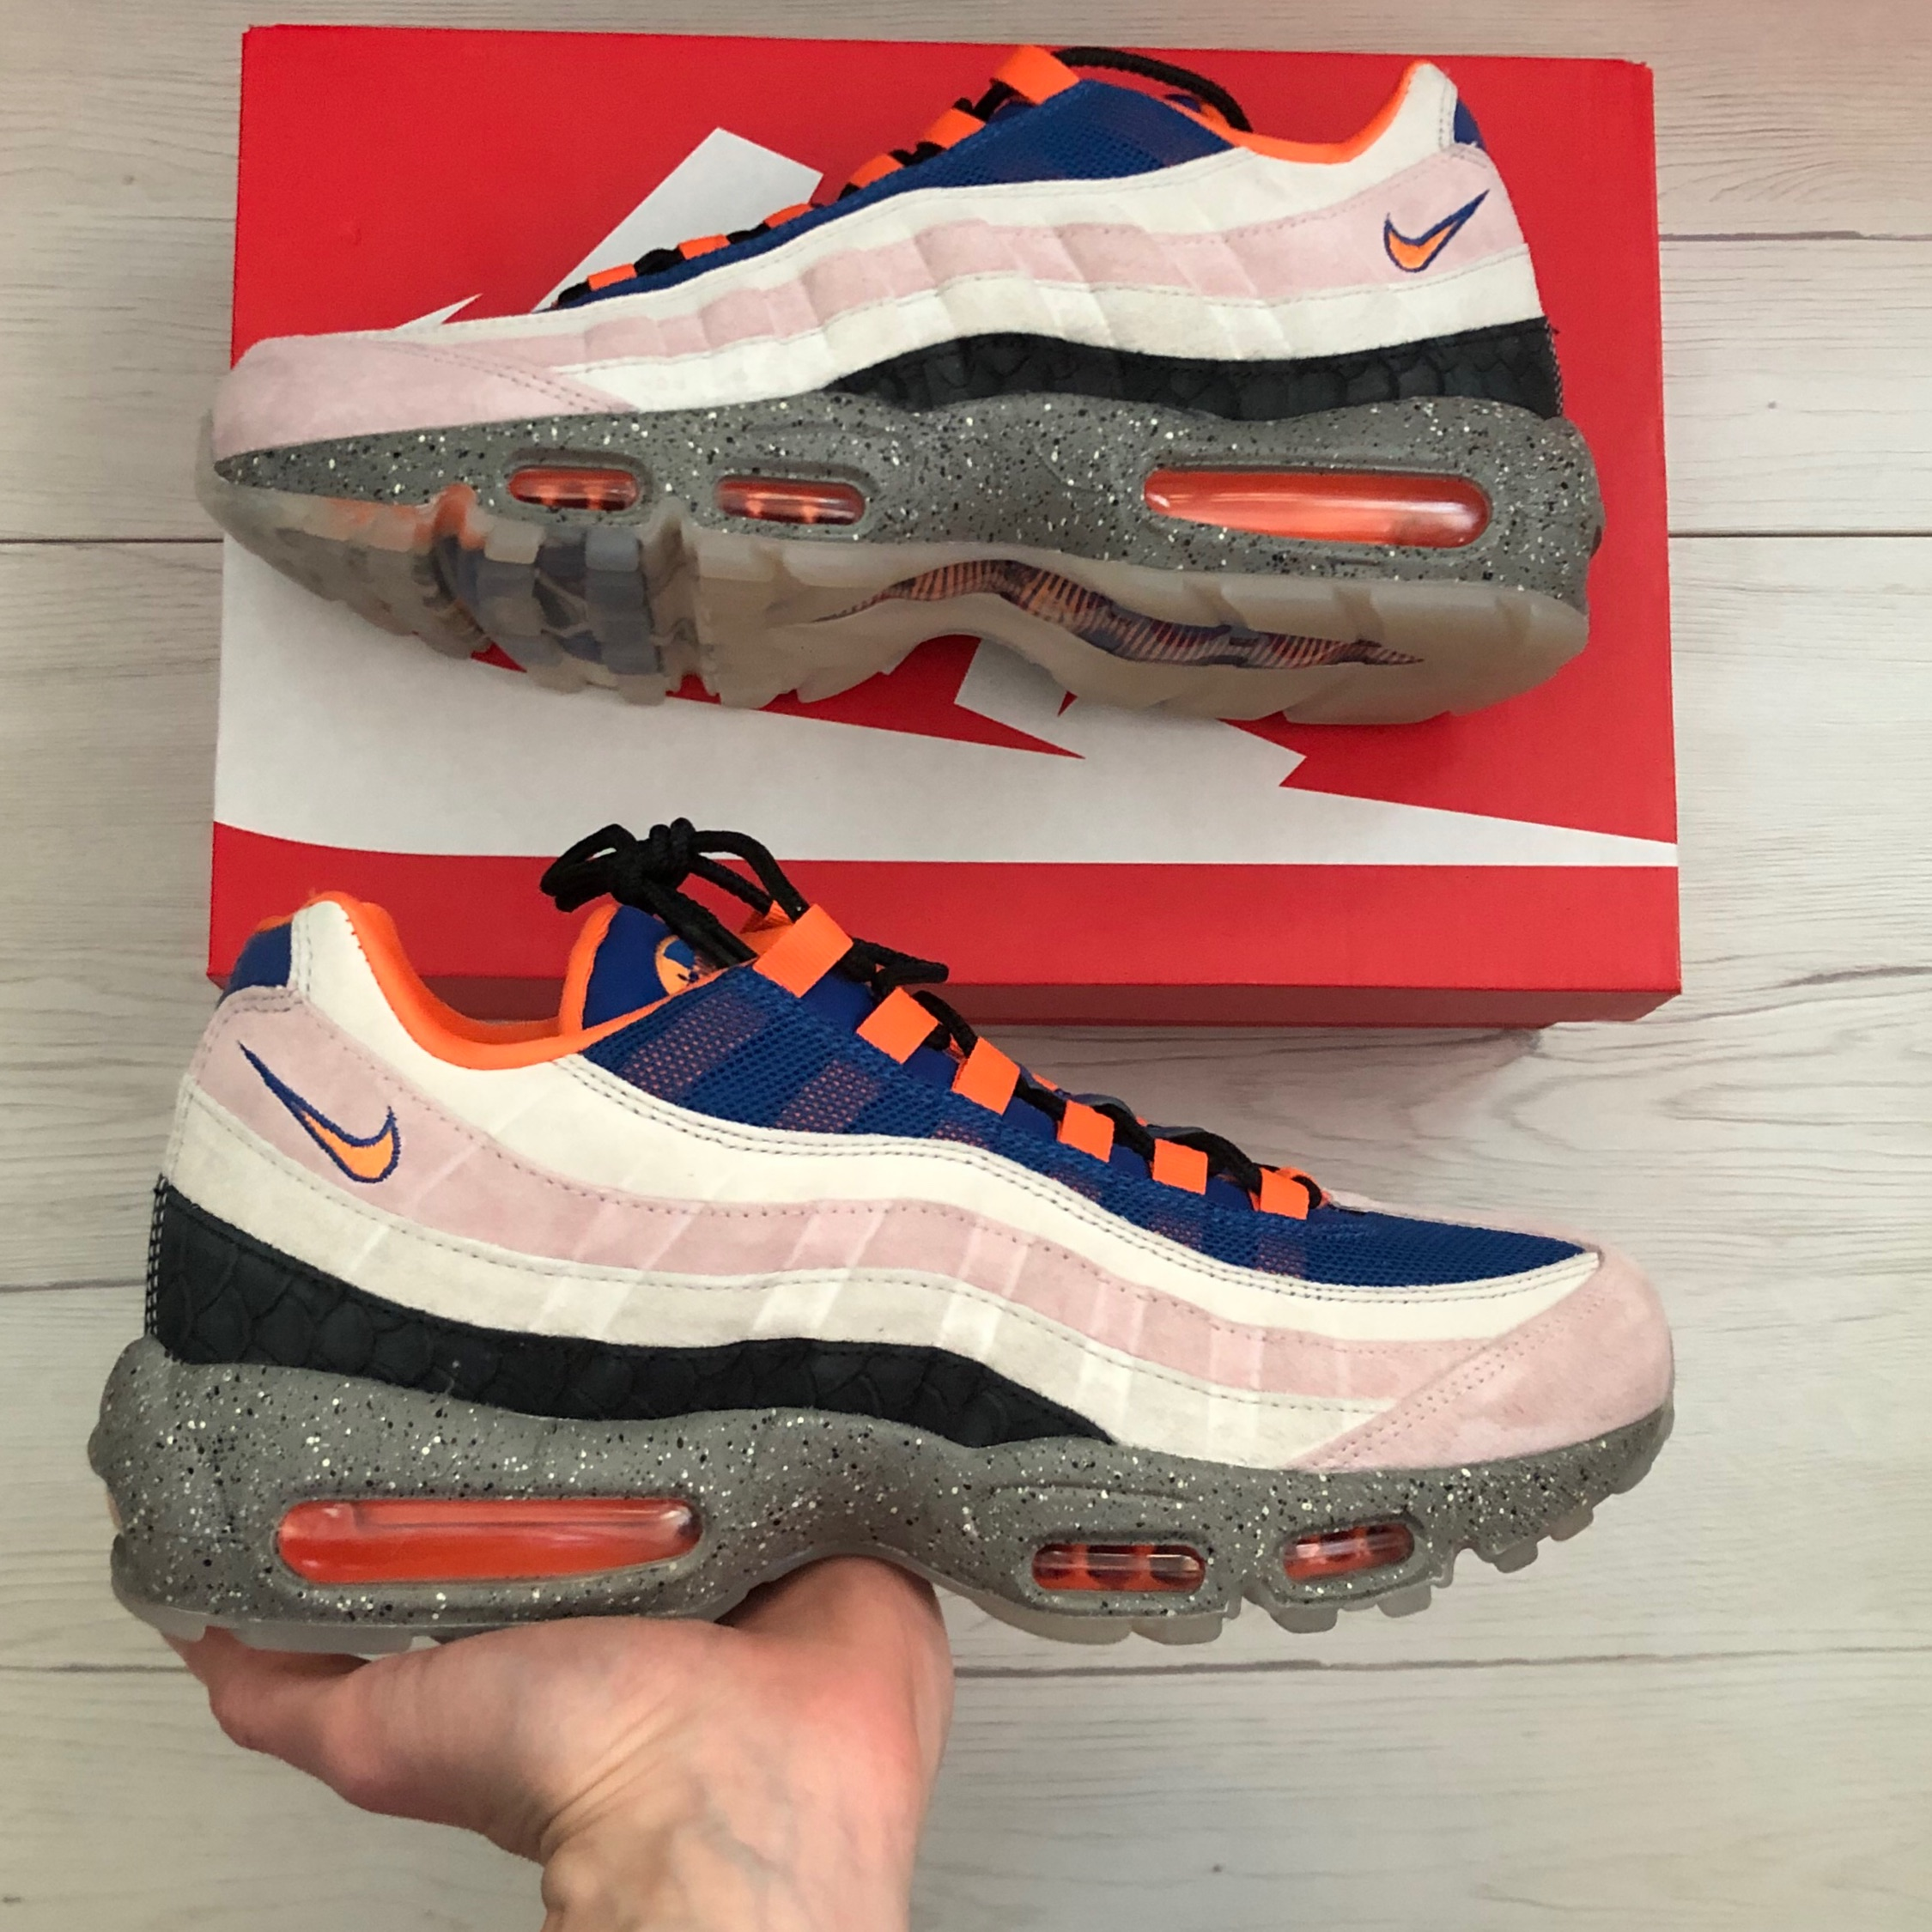 Air Max 95 King of the Mountain